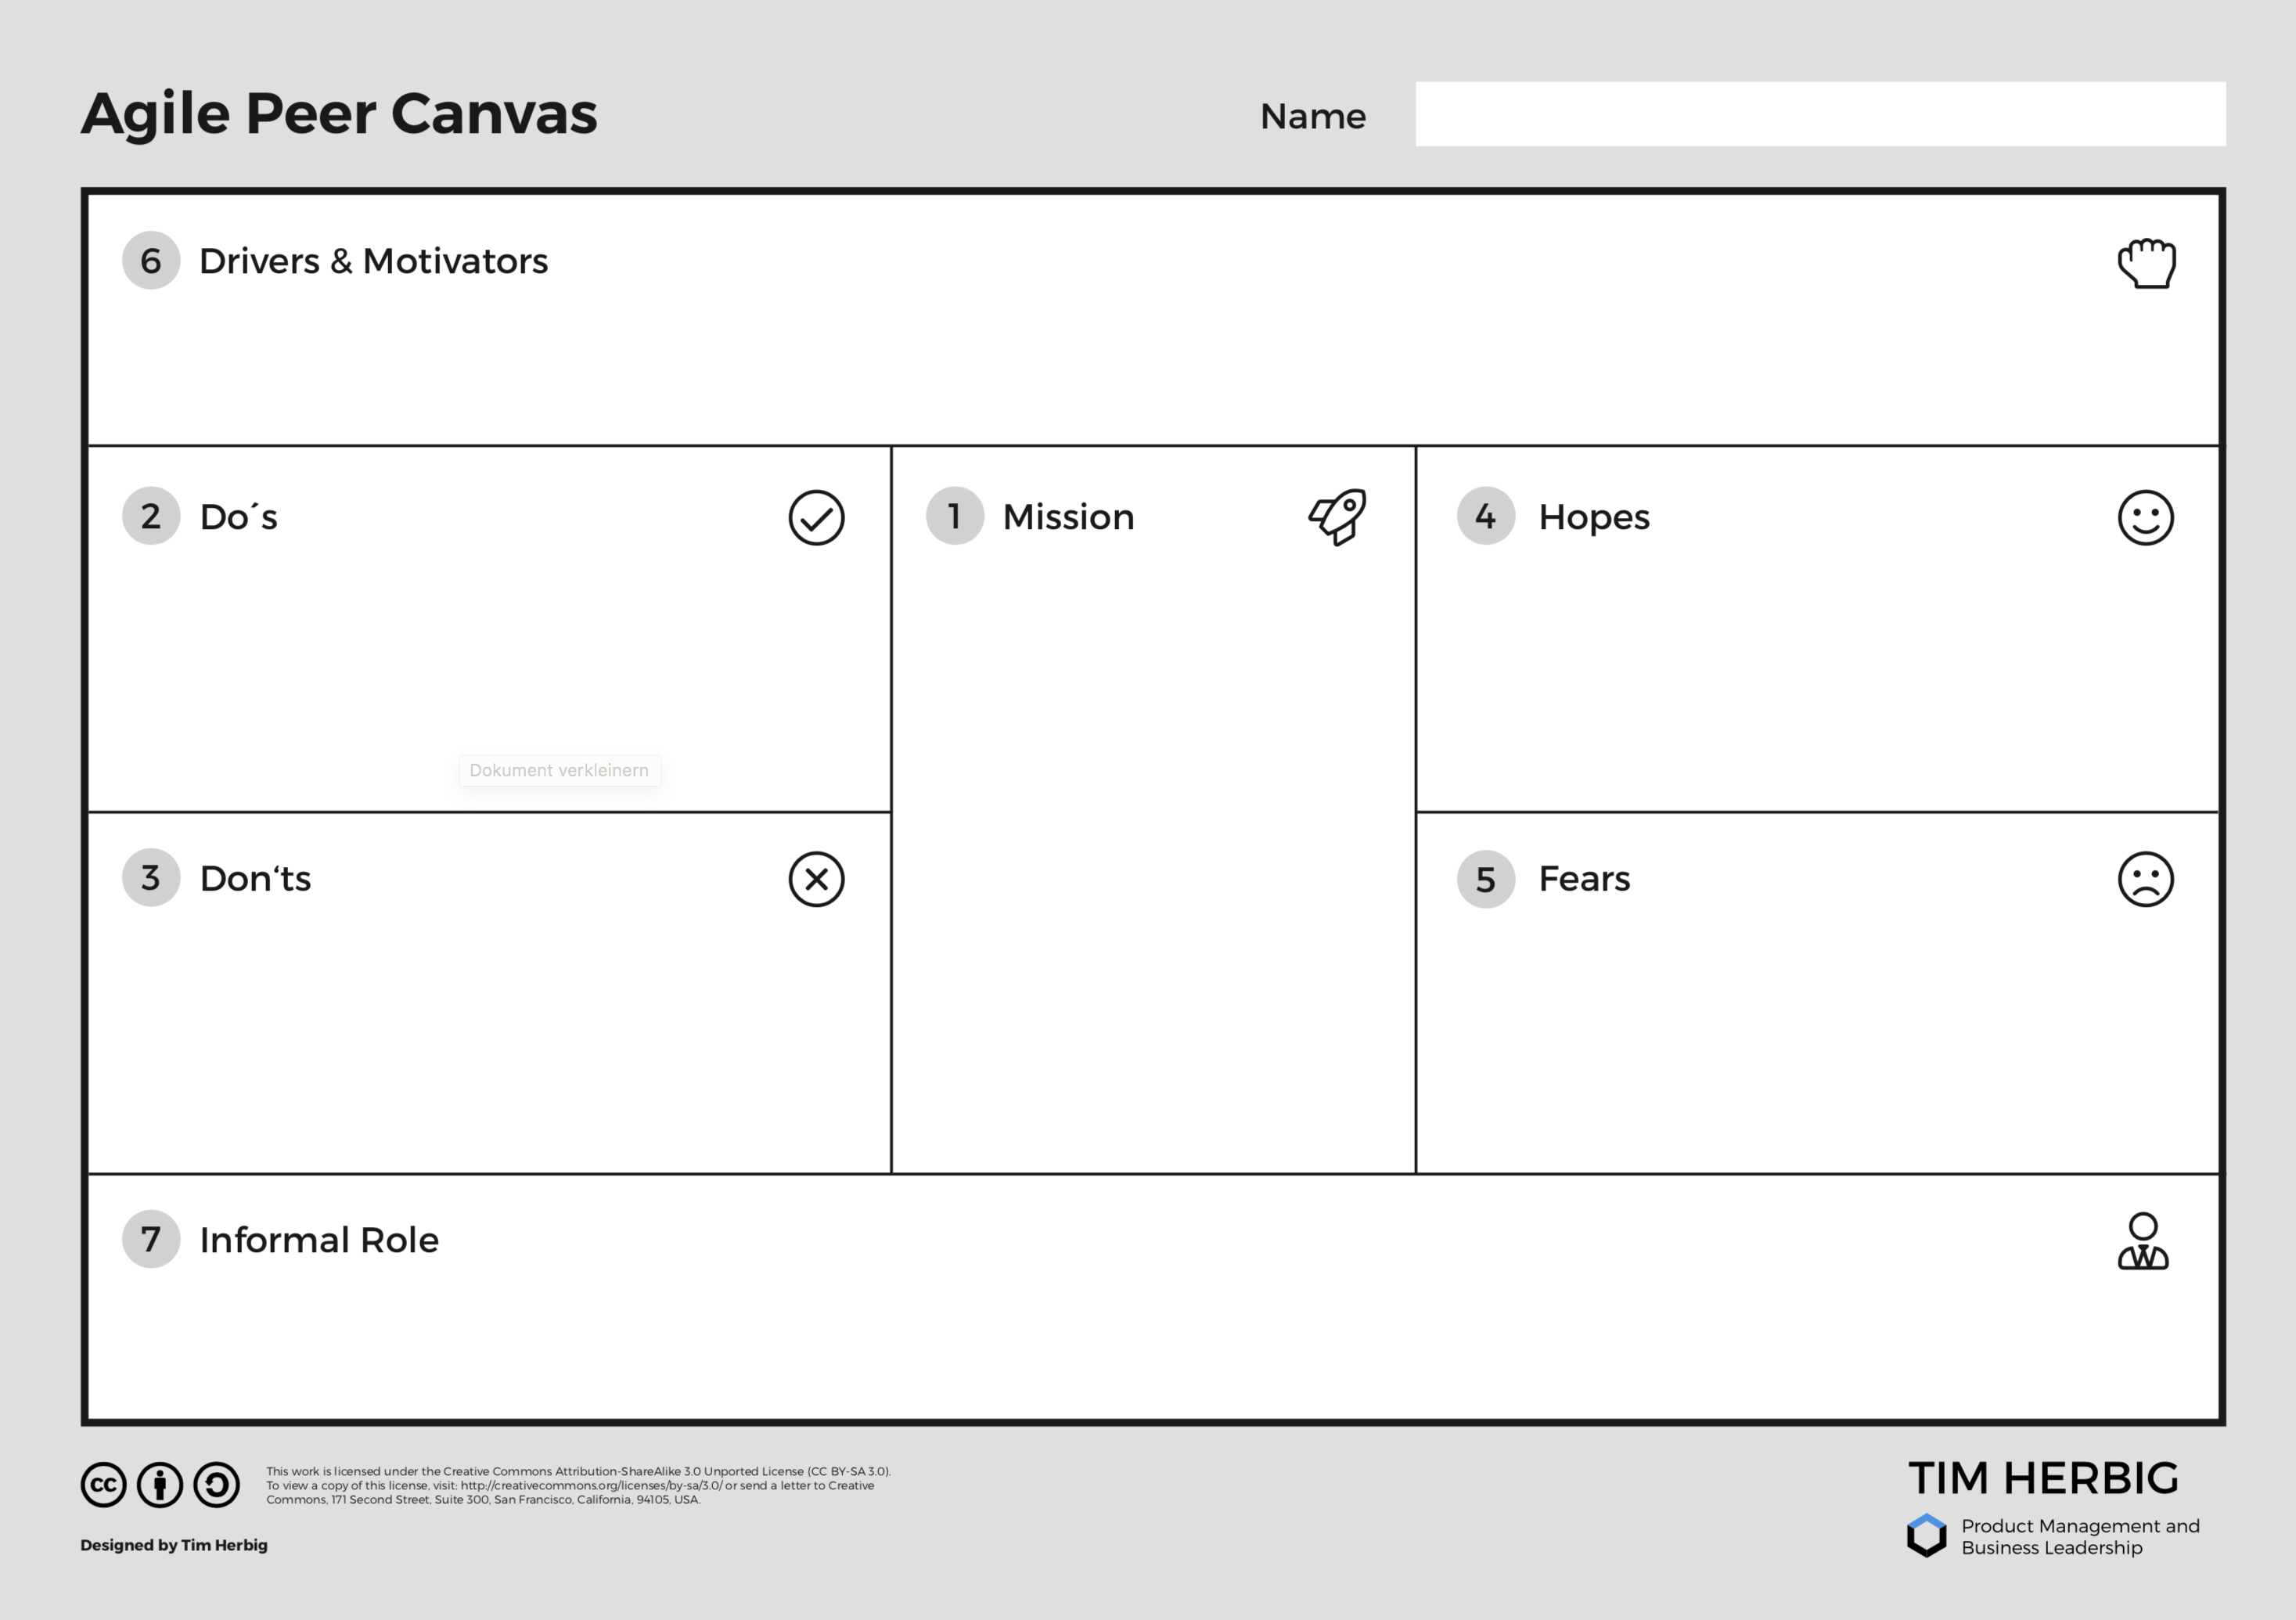 Agile Peer Canvas for Lateral Leadership